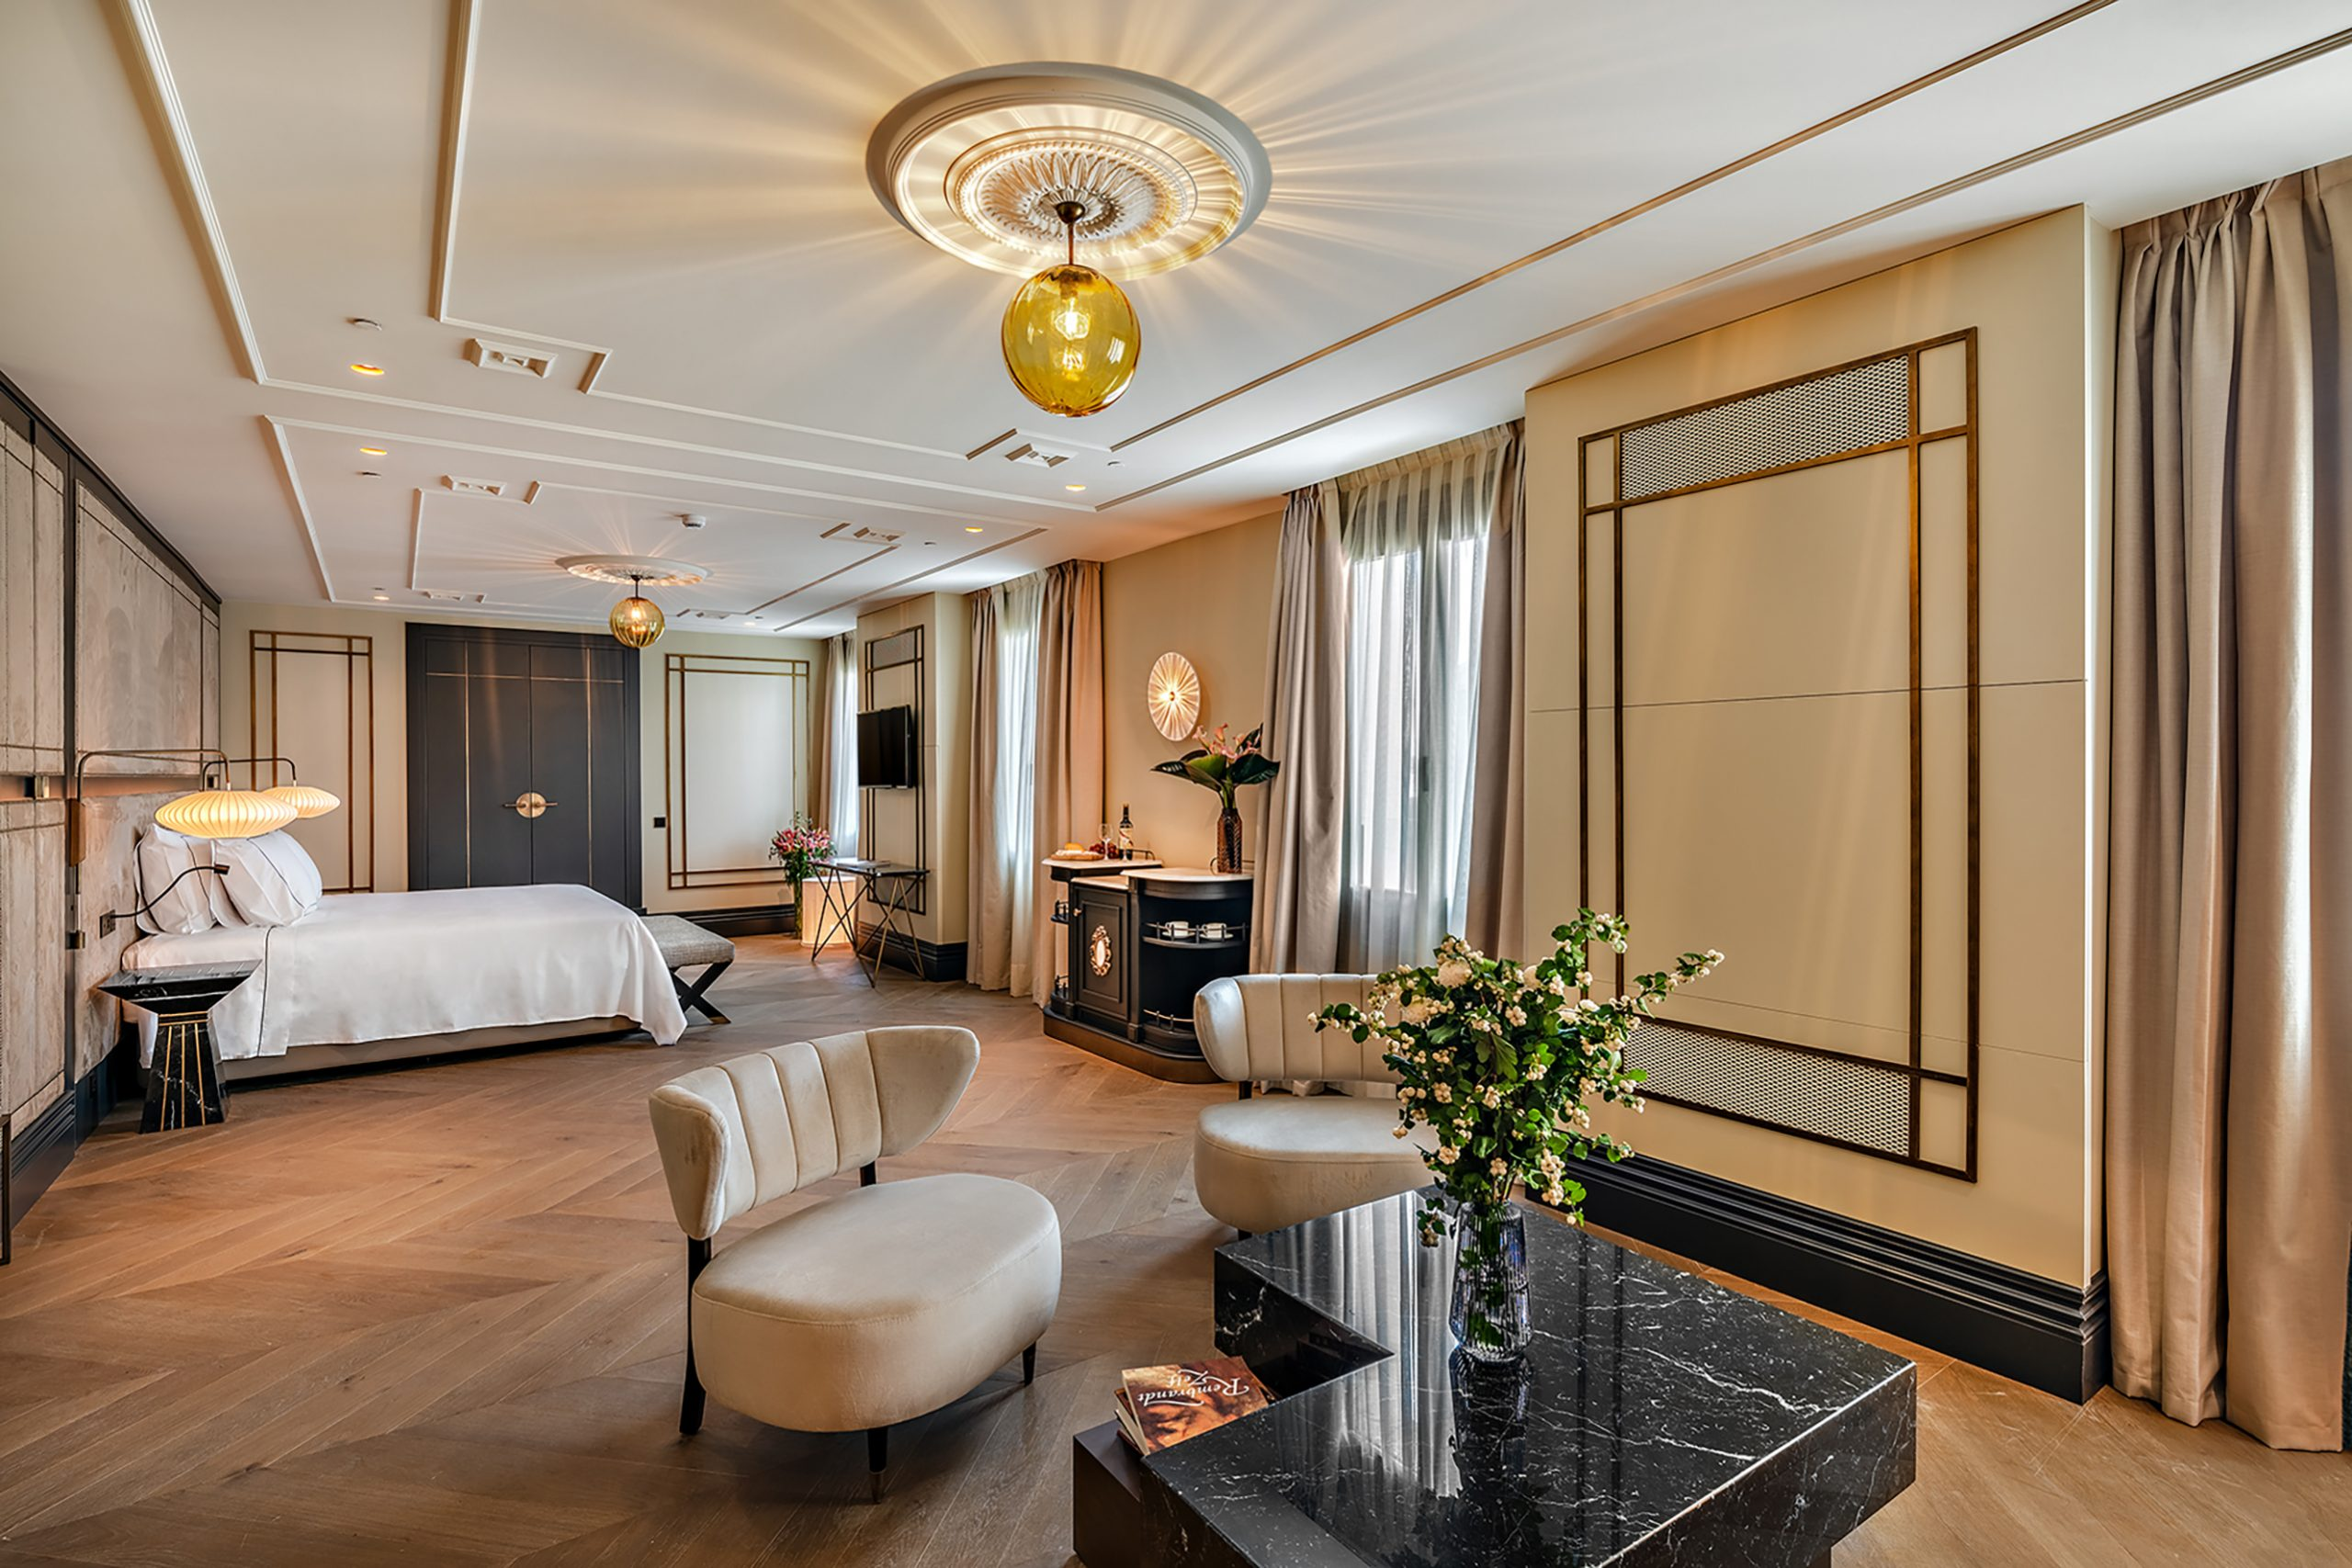 CoolRooms-Atocha_Suite3-scaled.jpg